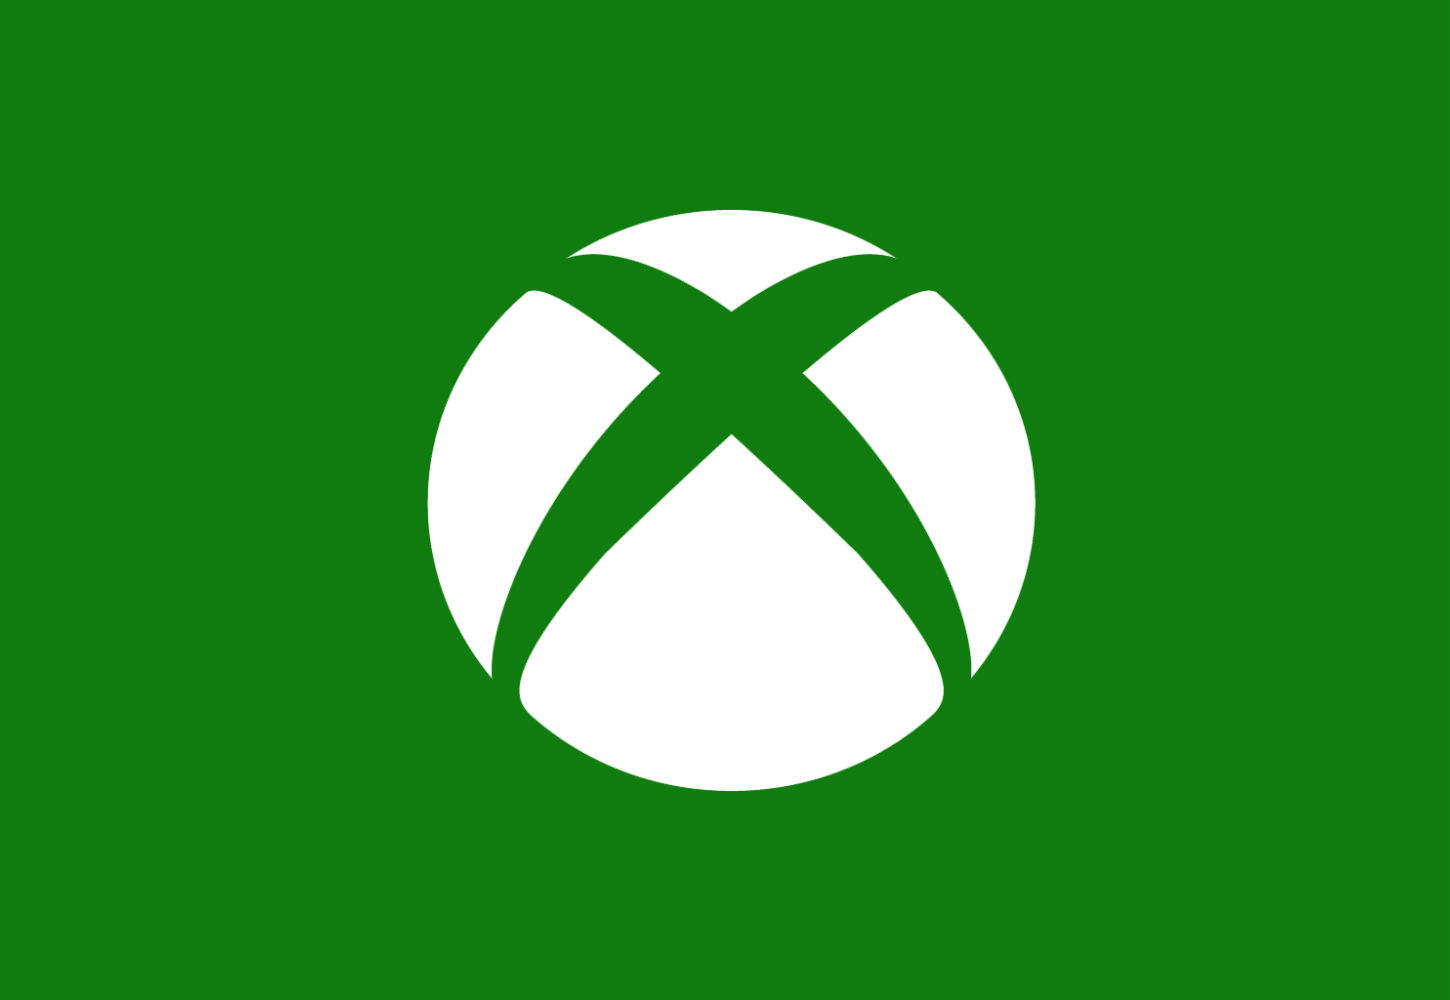 Savvy Gamers Have Discovered A Way Around Microsoft's 12-Character Limit For Gamertags